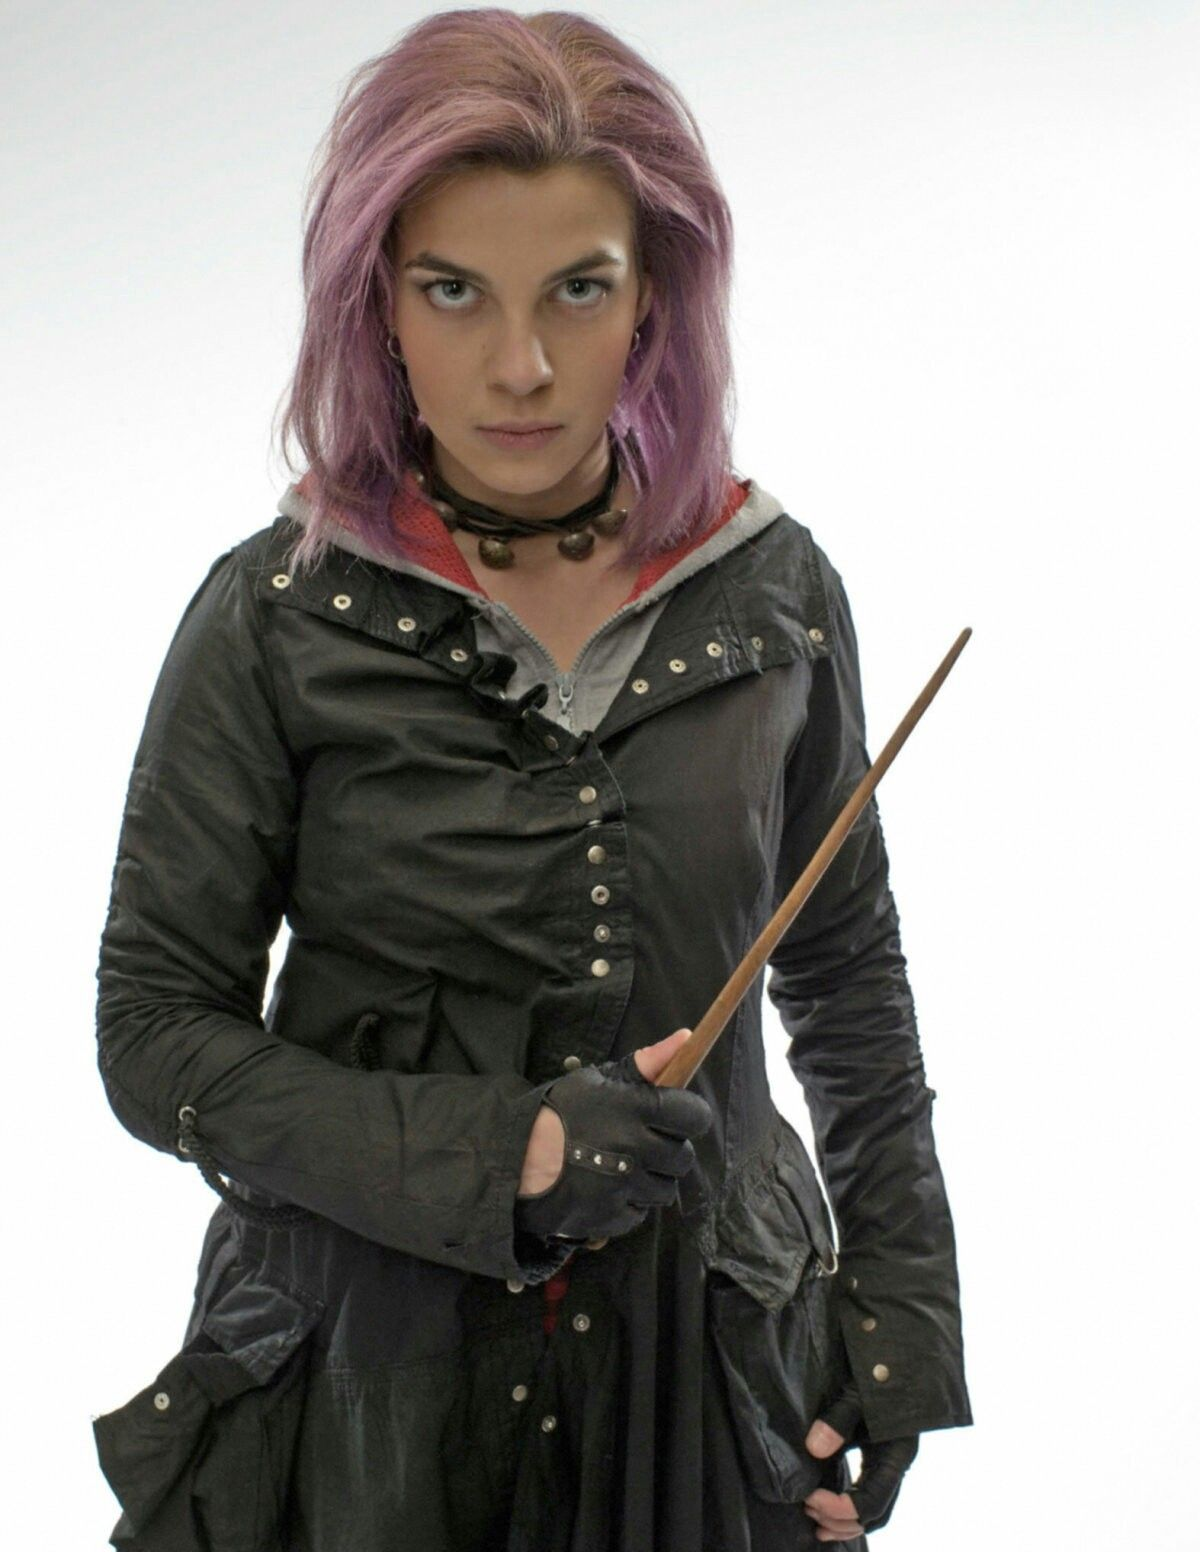 Pin By Rocio Farias On Harry Potter Tonks Harry Potter Female Harry Potter Harry Potter Cosplay